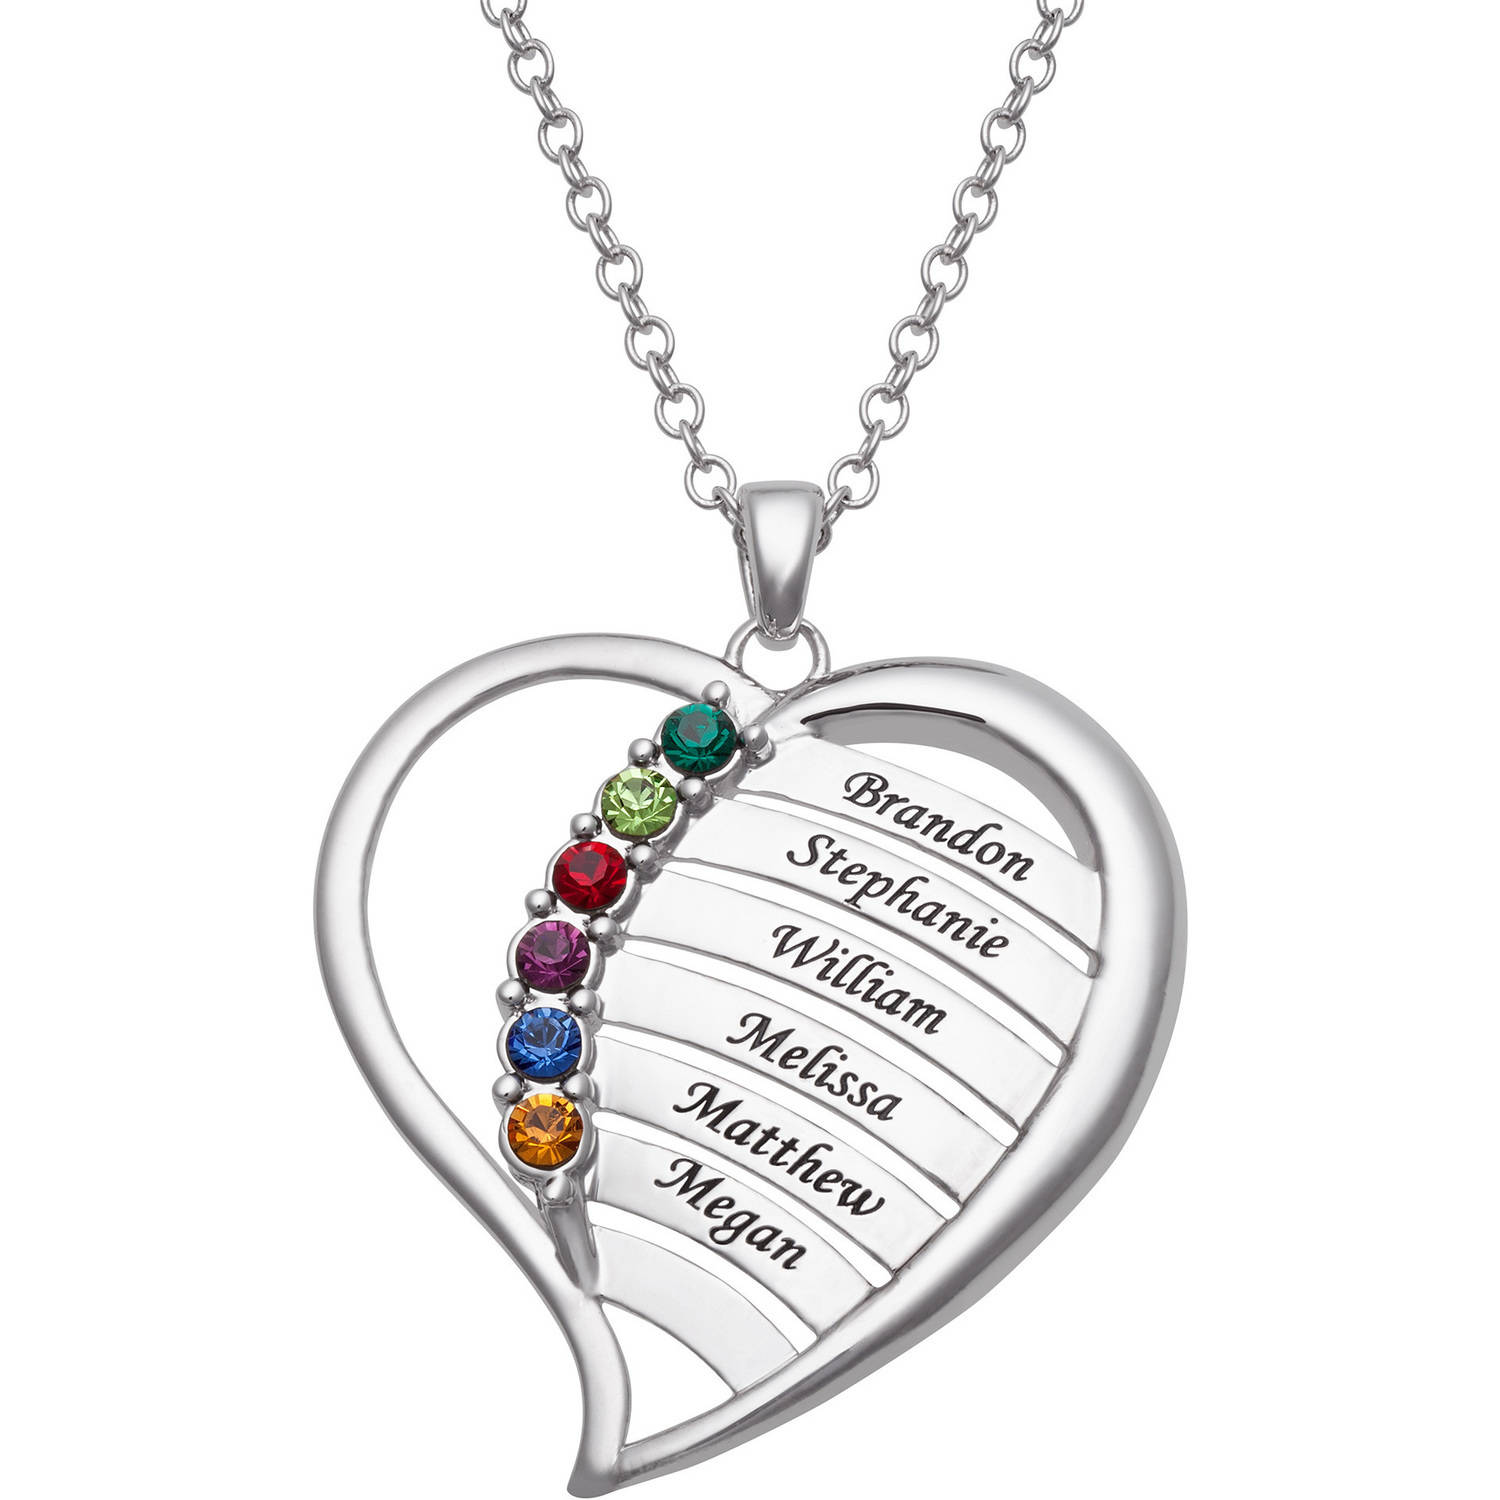 Personalized Family Rhodium-Plated or Gold-Plated Birthstone and Names Heart Necklace, 18""